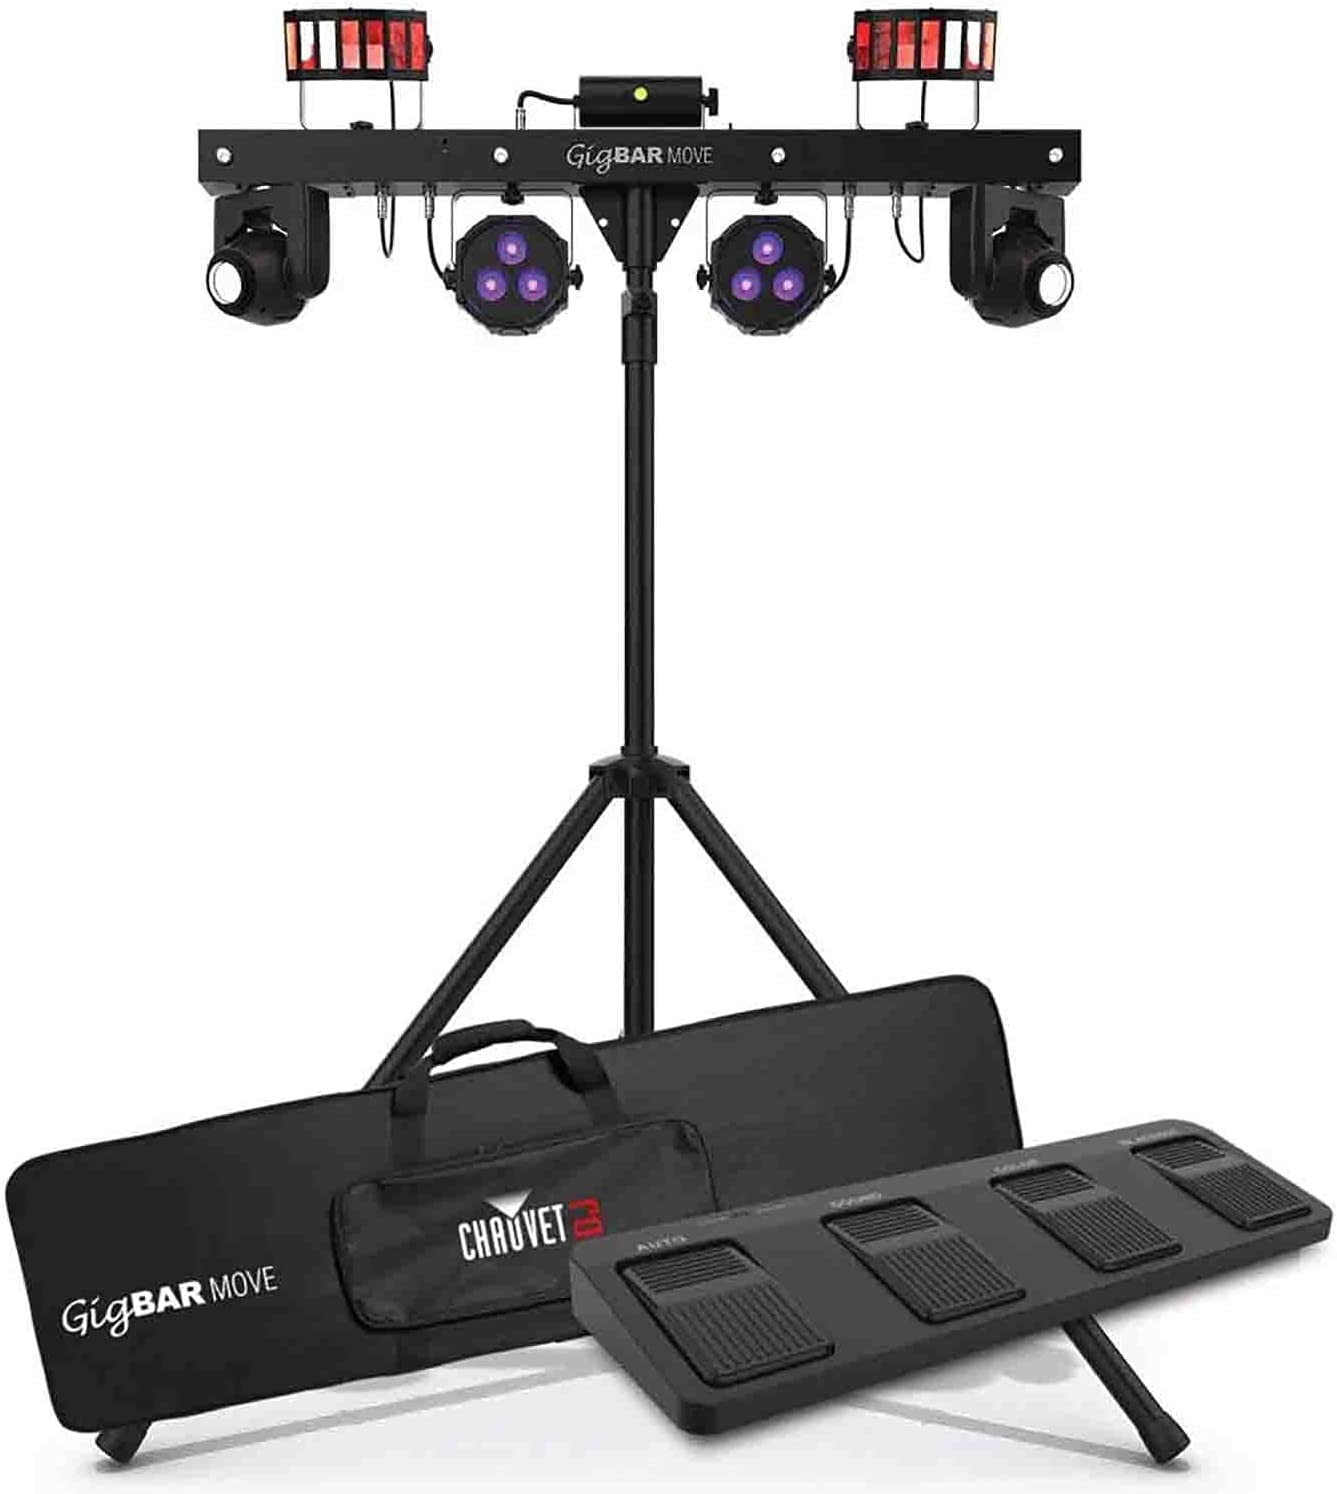 Limited Special Price Spasm price CHAUVET DJ Gig Bar Move 5-in-1 with Lighting Moving 2 System LED